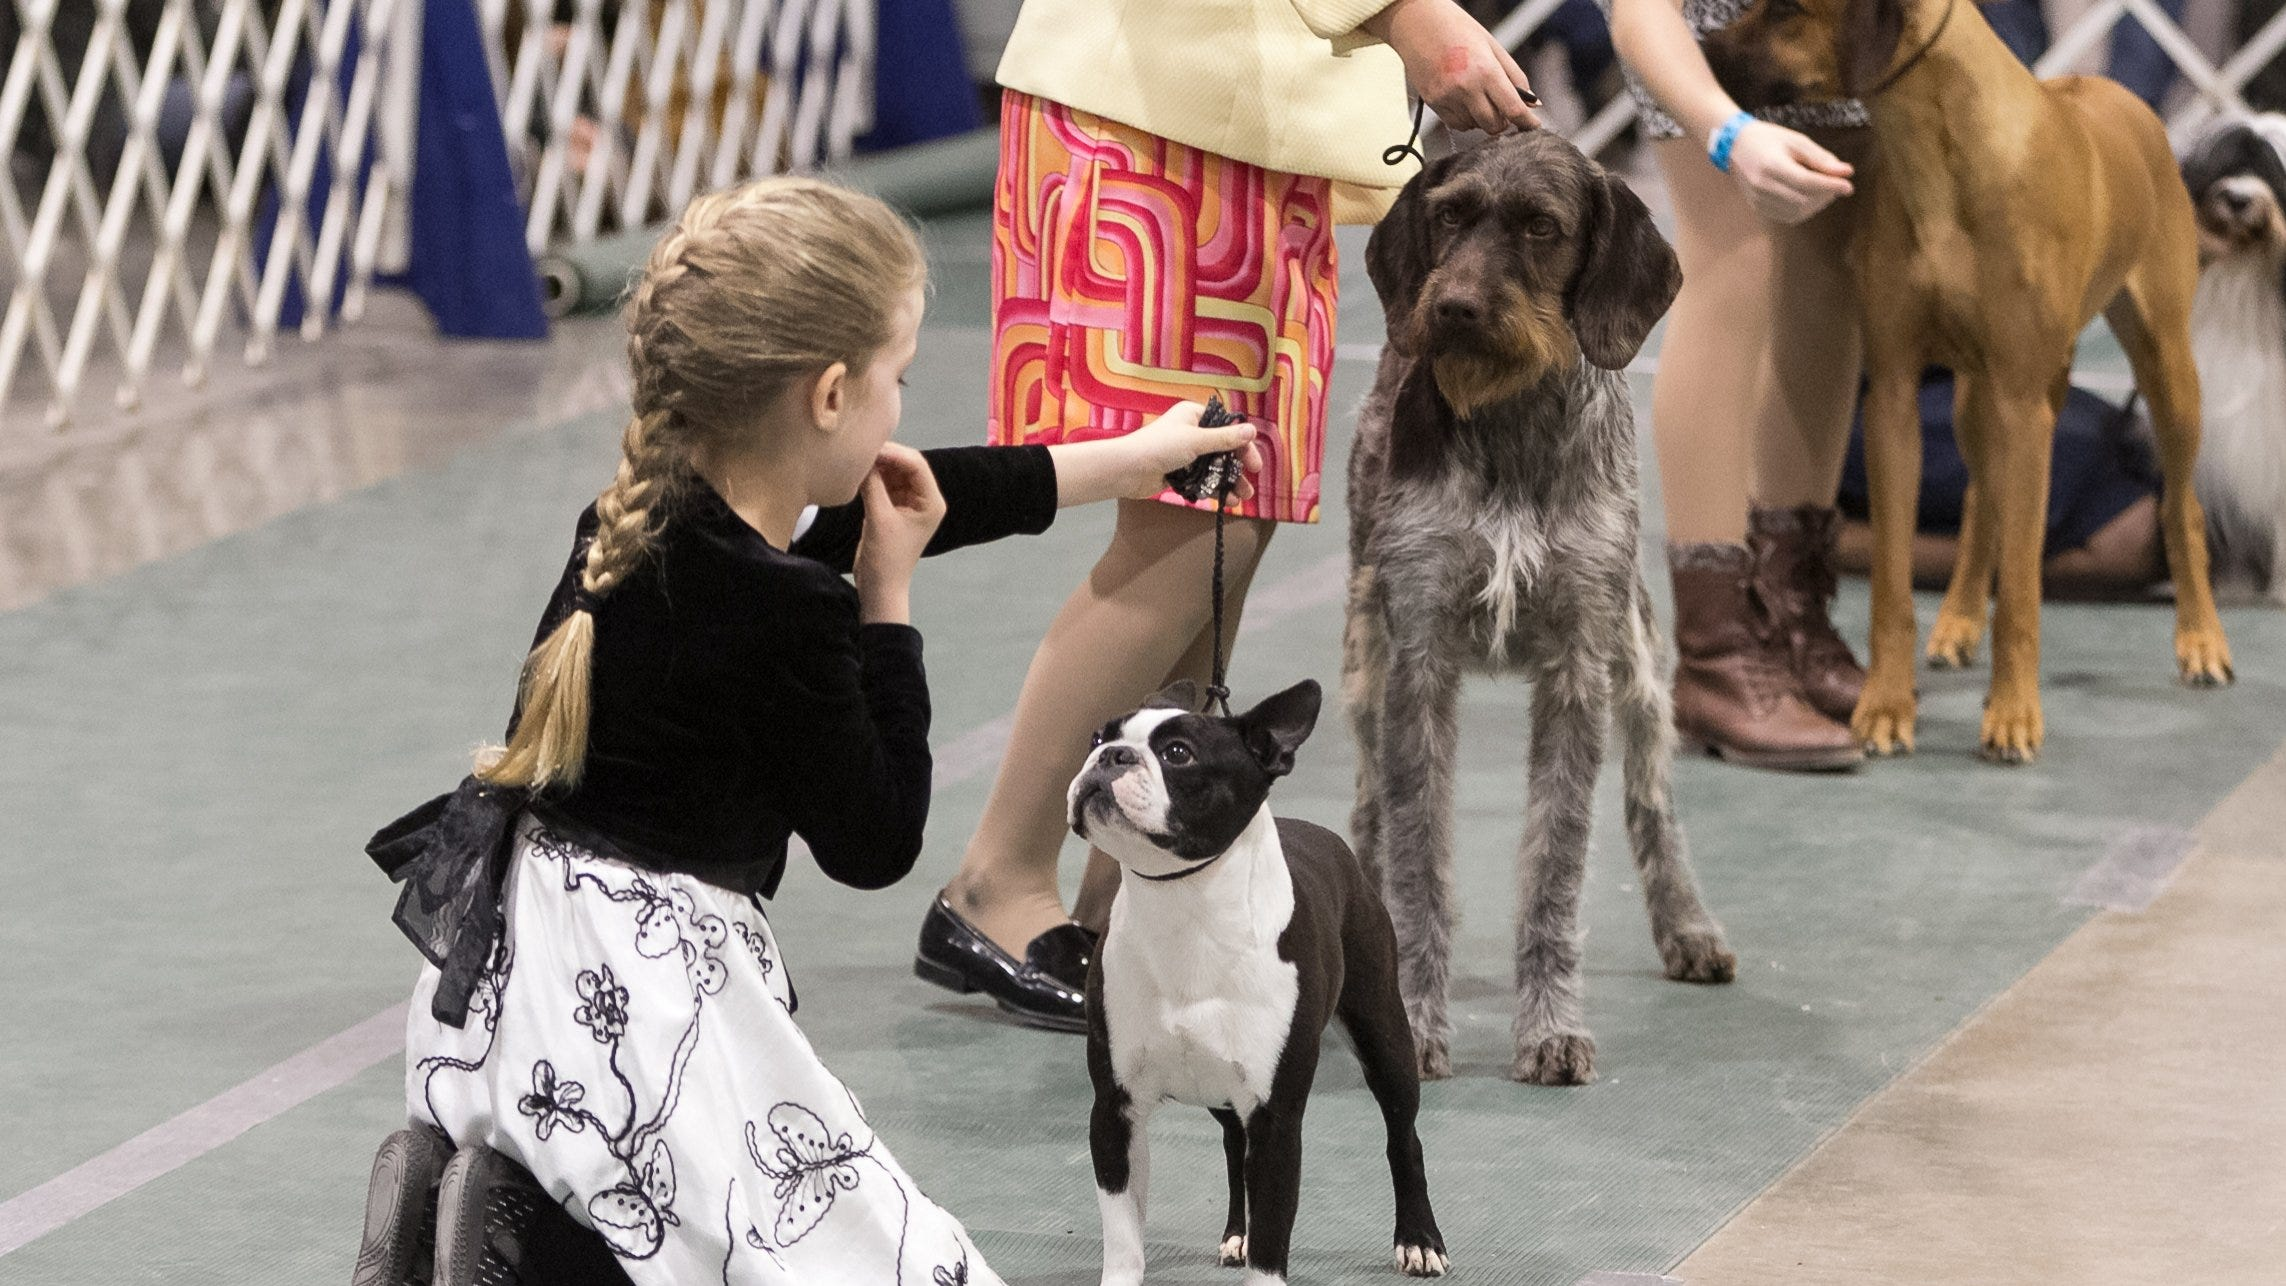 Detroit's Top 10: Cool things to do this weekend, including Novi dog show, Hip Hop Smackdown, Detroit Boat Show